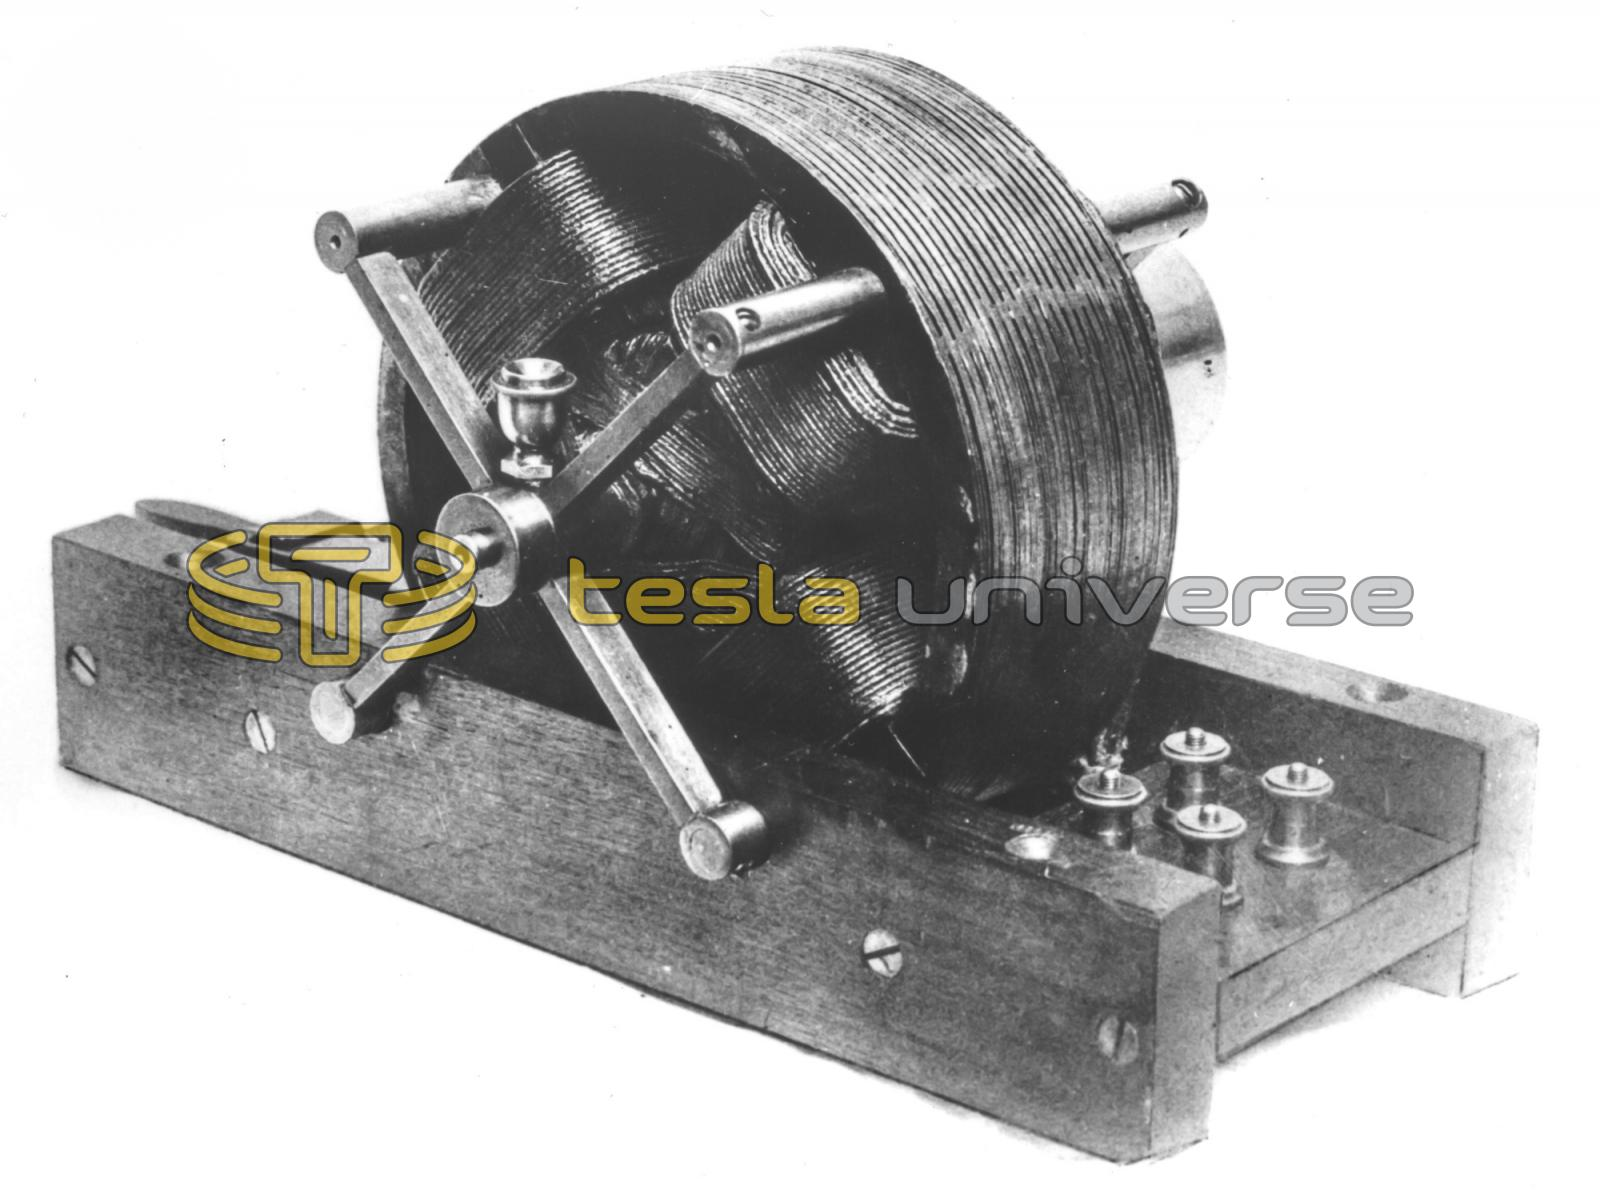 The First Nikola Tesla Alternating Cur Induction Motor